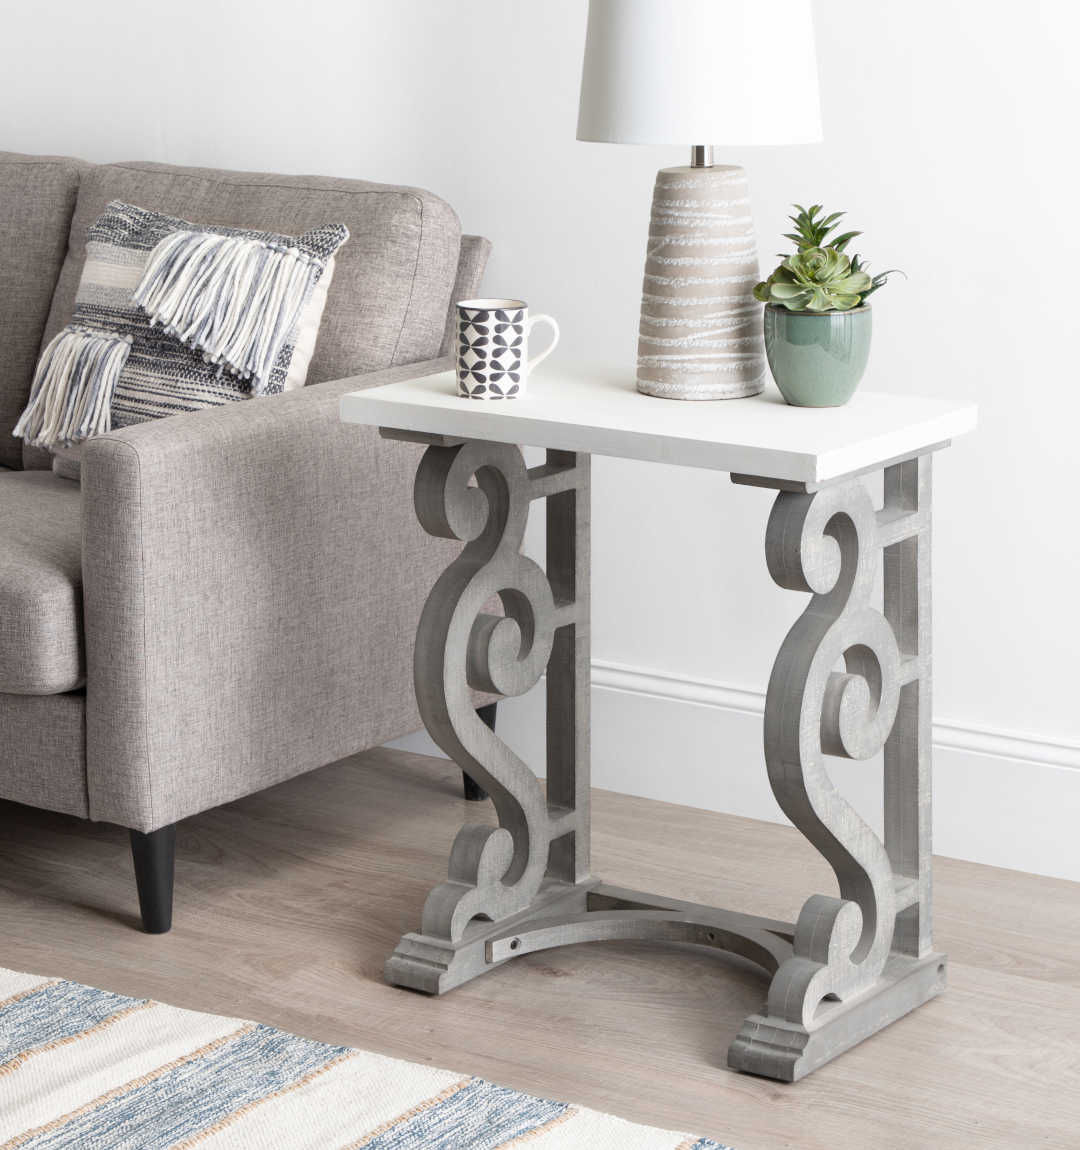 Gray end table with swirl pattern